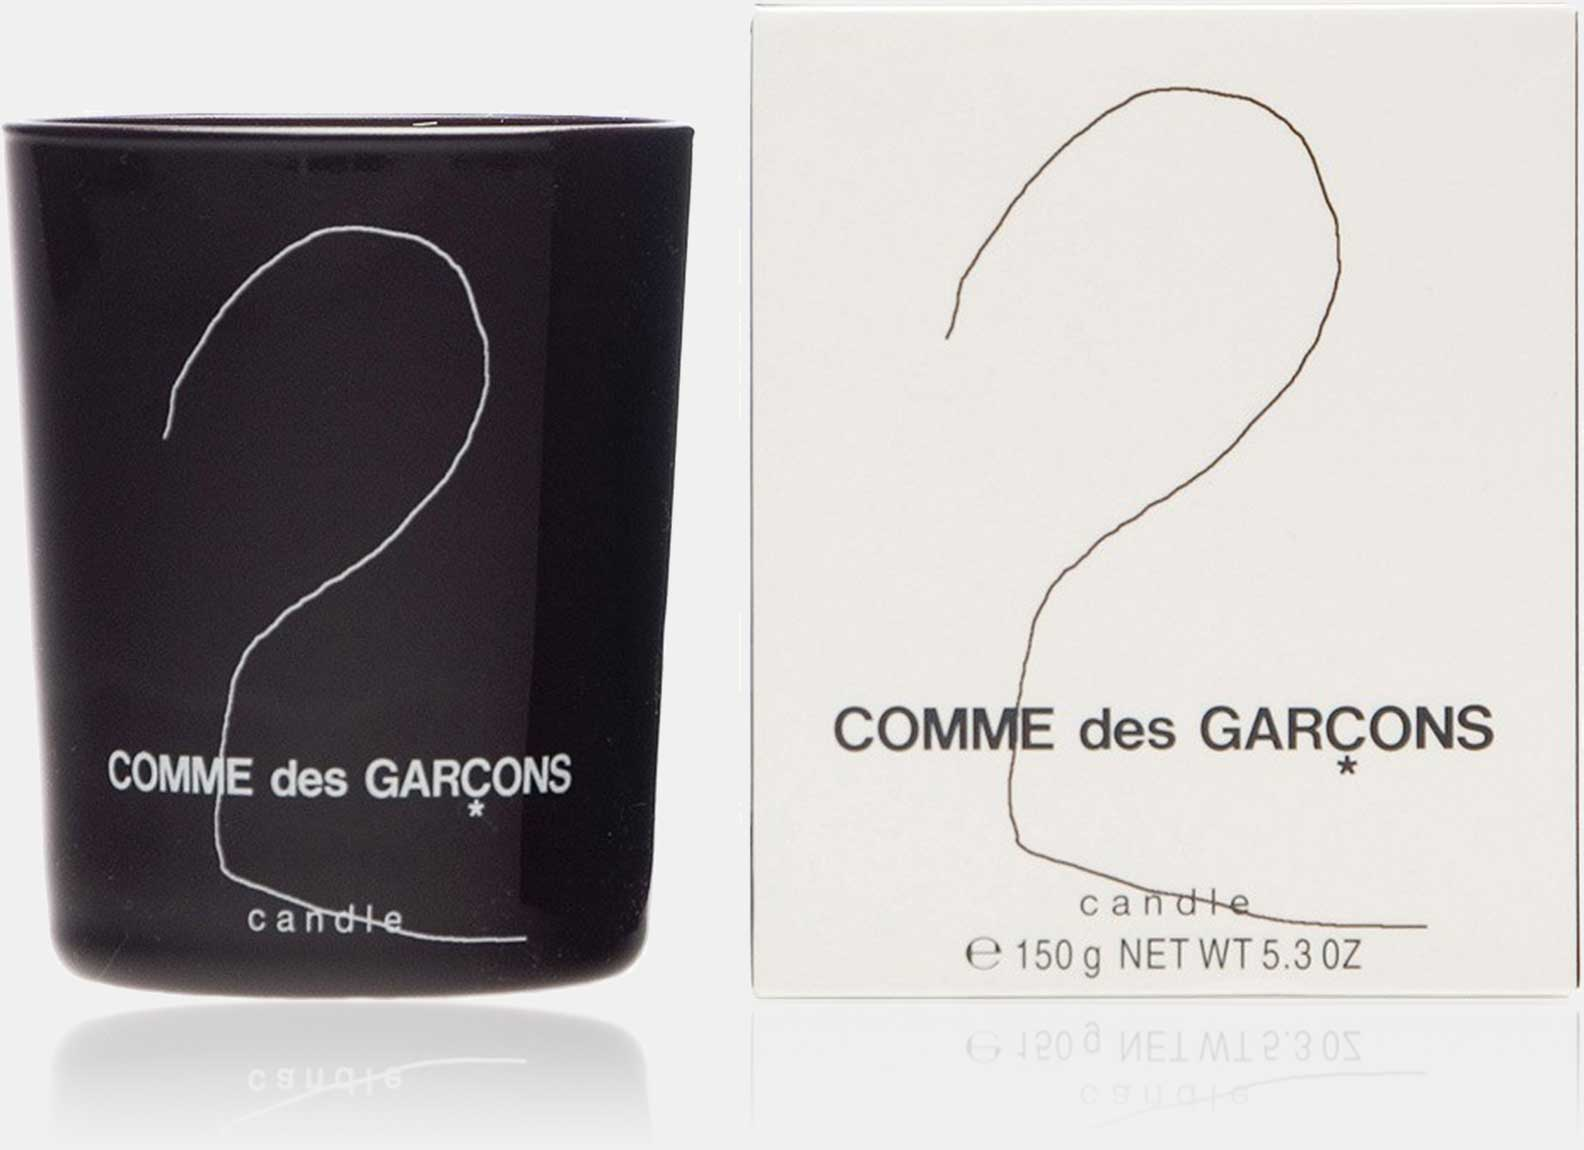 CDG2 Candle - Candle (150 g)